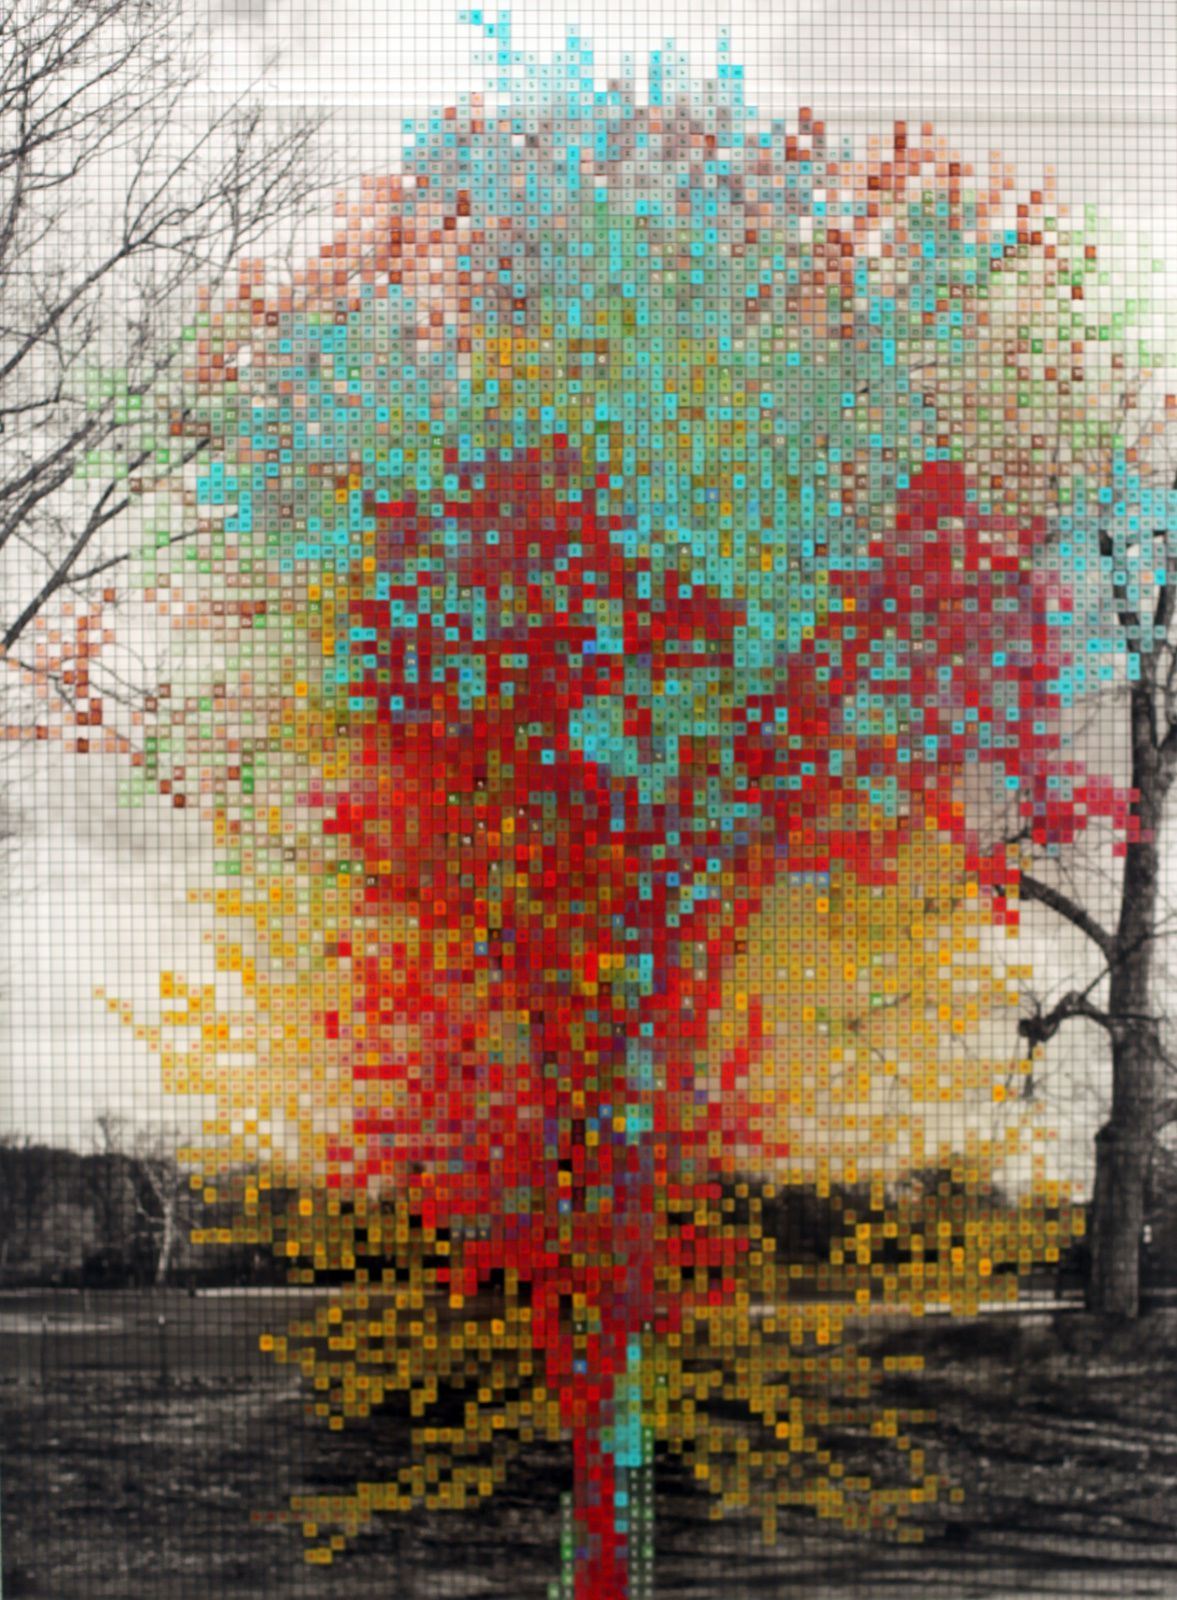 """Numbers and trees: Central Park Series III: Tree #4"", 2016 de Charles GAINES - Courtesy Galerie Max Hetzler © Photo Éric SIMON"